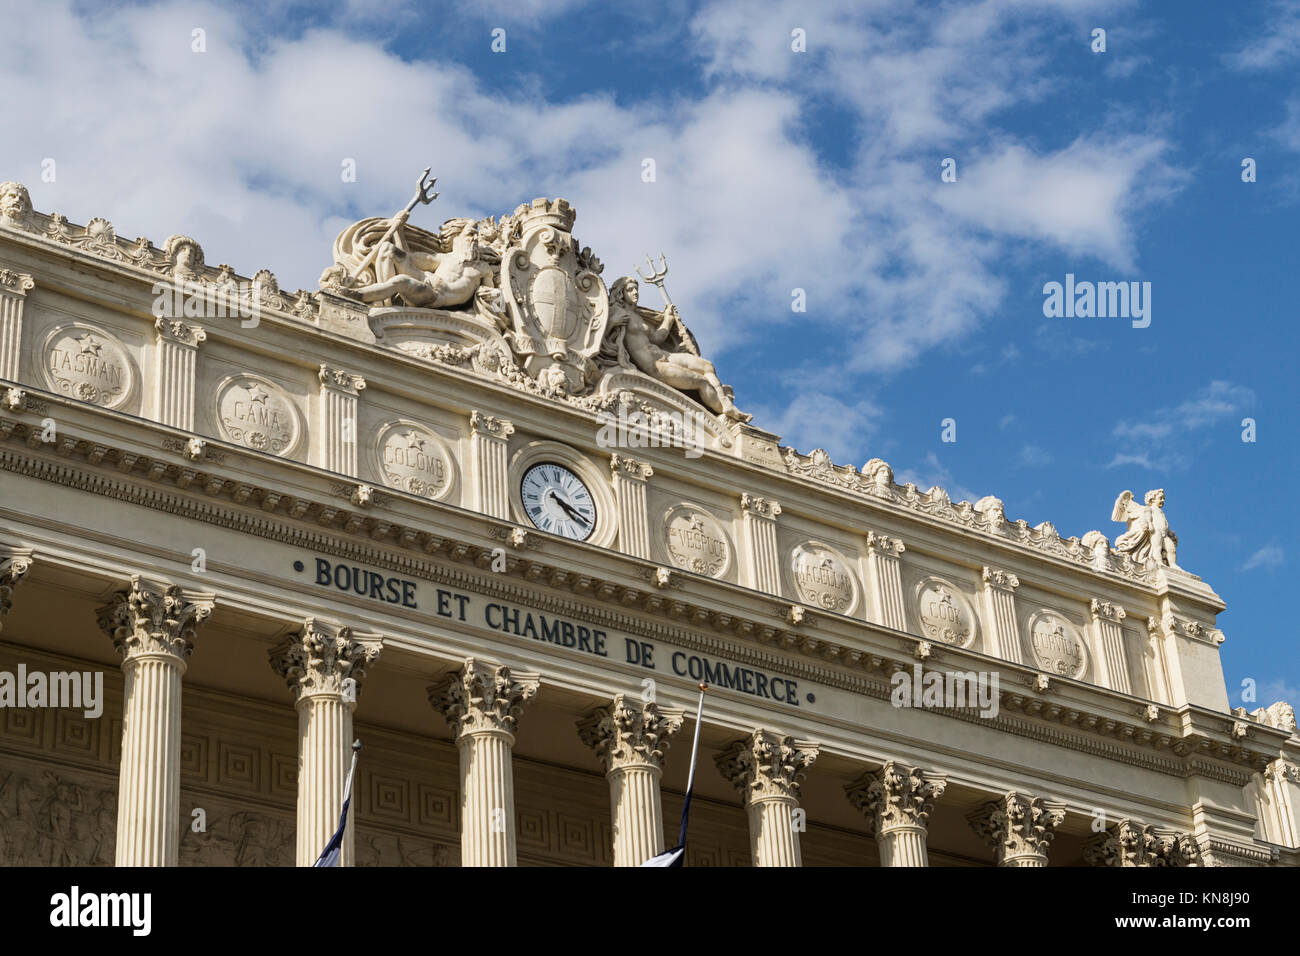 Stock Exchange building, Chambre of Commerce, Musee de la Marine, Marseille, France - Stock Image